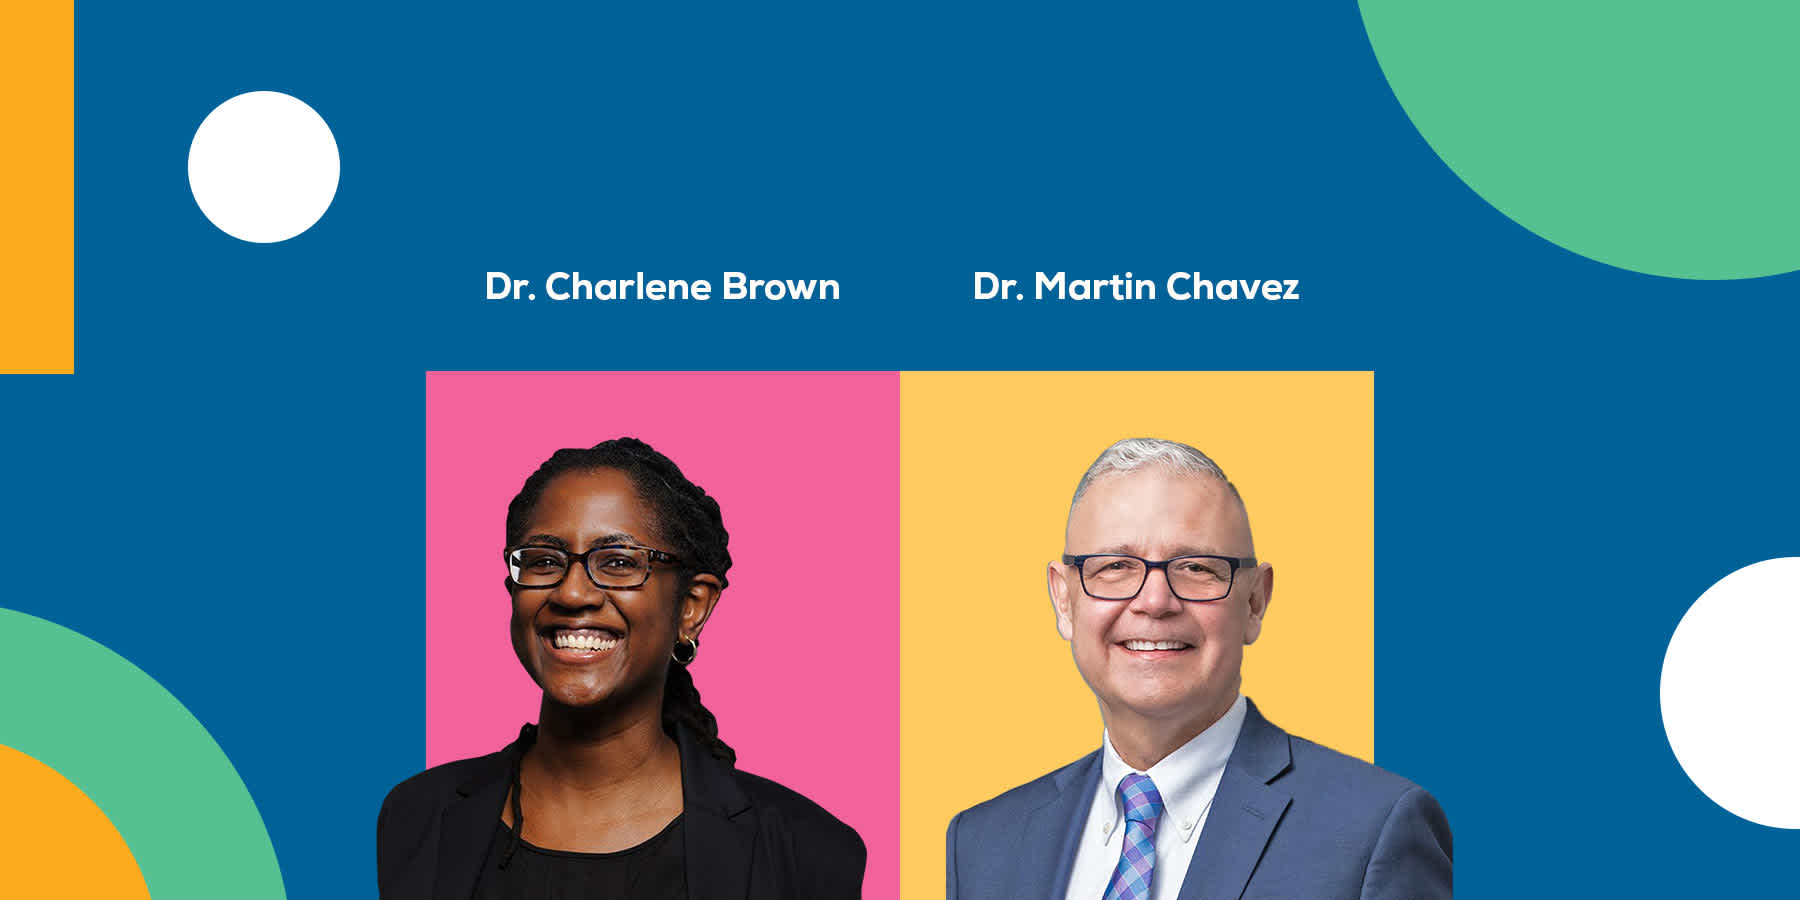 Two doctors placed on a colorful background